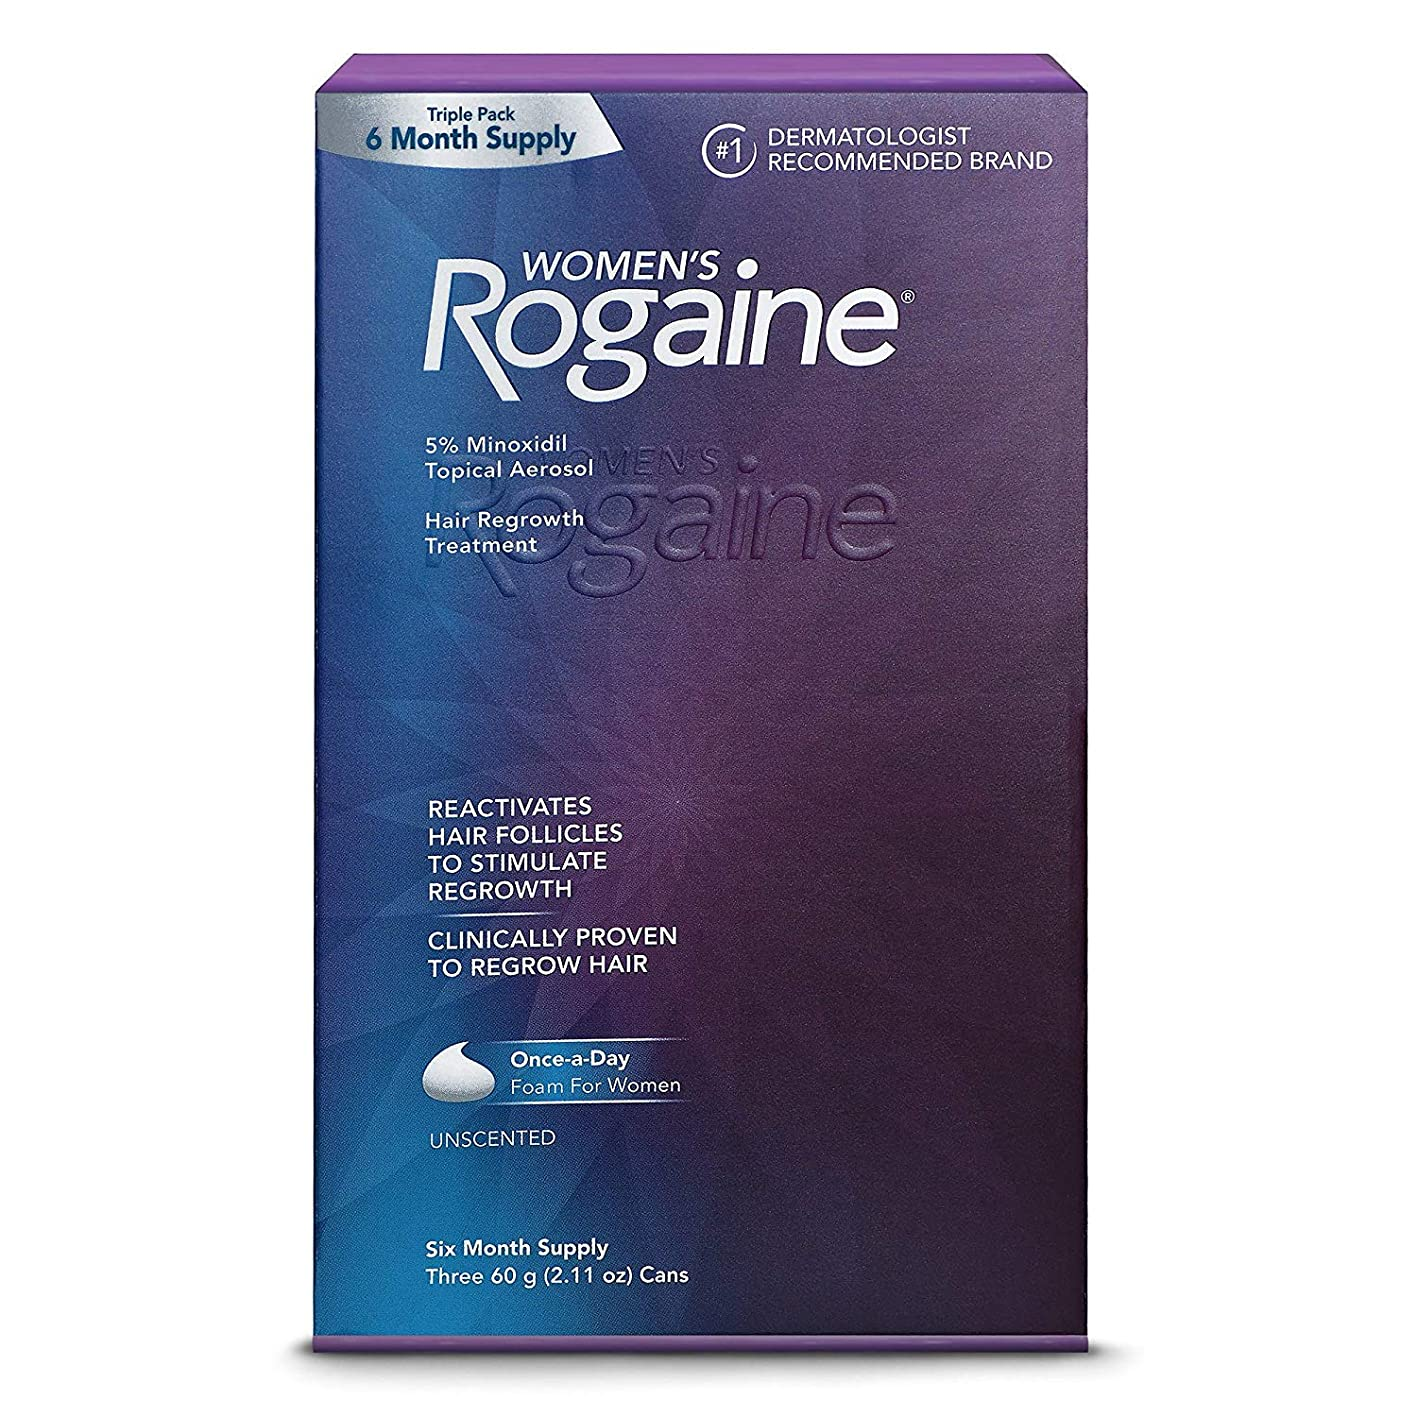 Women's ROGAINE 5% Minoxidil Topical Aerosol Hair Regrowth Treatment (Unscented) Foam - SIX MONTH SUPPLY - Three 60g. (2.11 oz) Cans (Packaging varies) fpirzrjvtds825